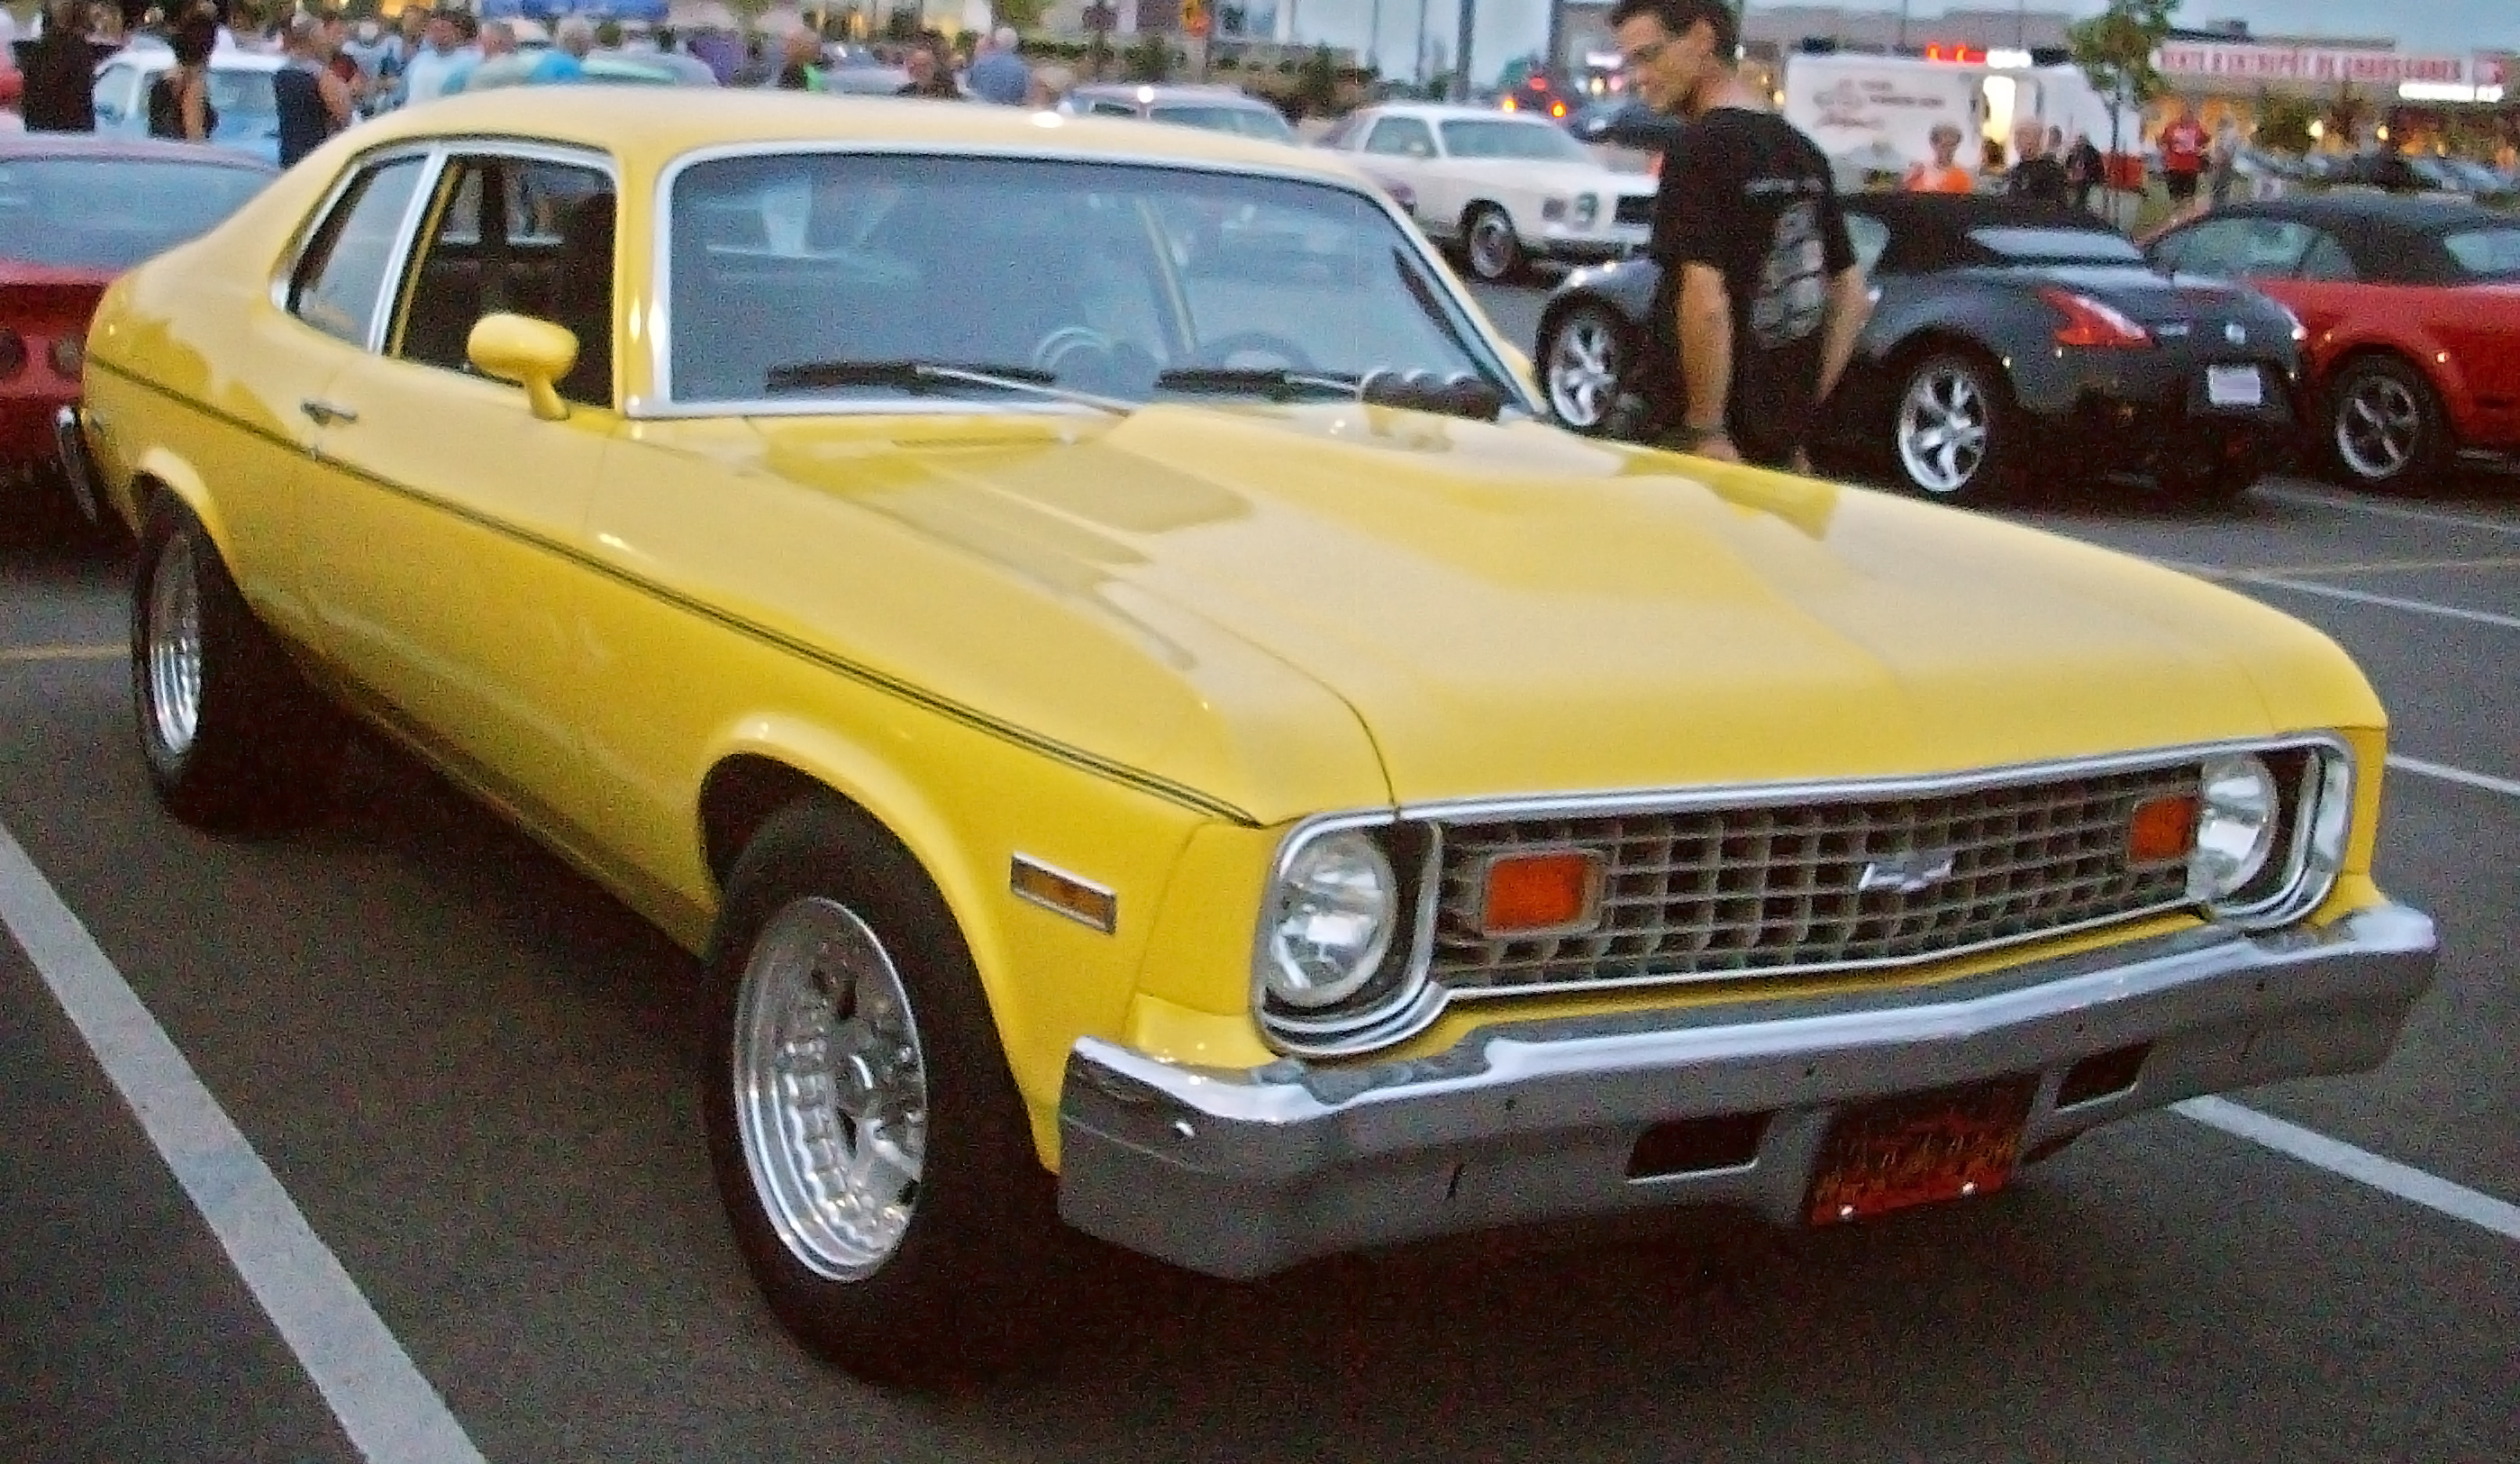 File:'74 Chevrolet Nova ('12 Les chauds vendredis).JPG - Wikimedia Commons